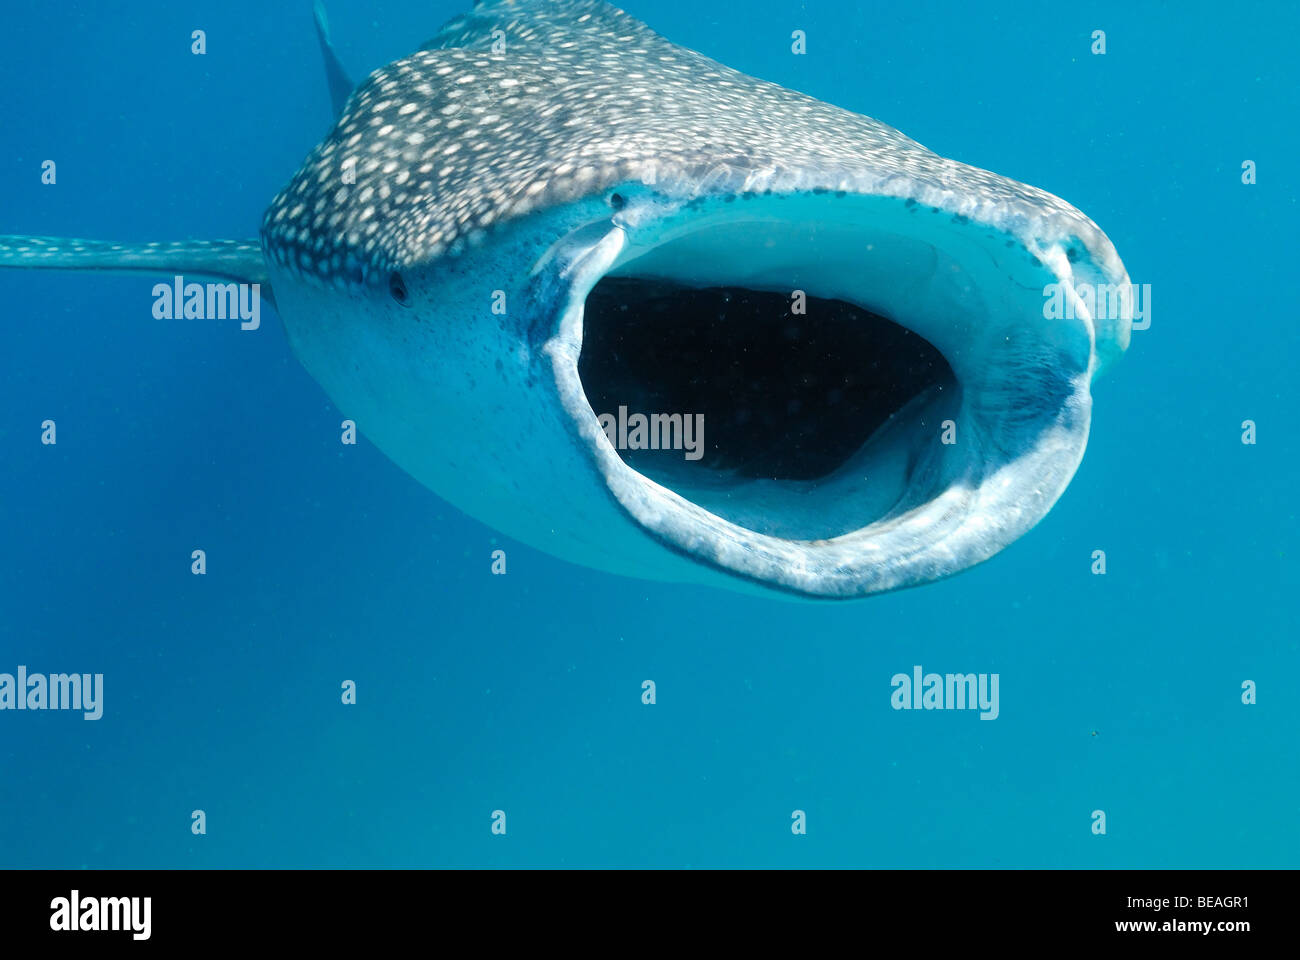 Whale shark swimming and feeding, Bay of Tadjoura, Gulf of Aden - Stock Image